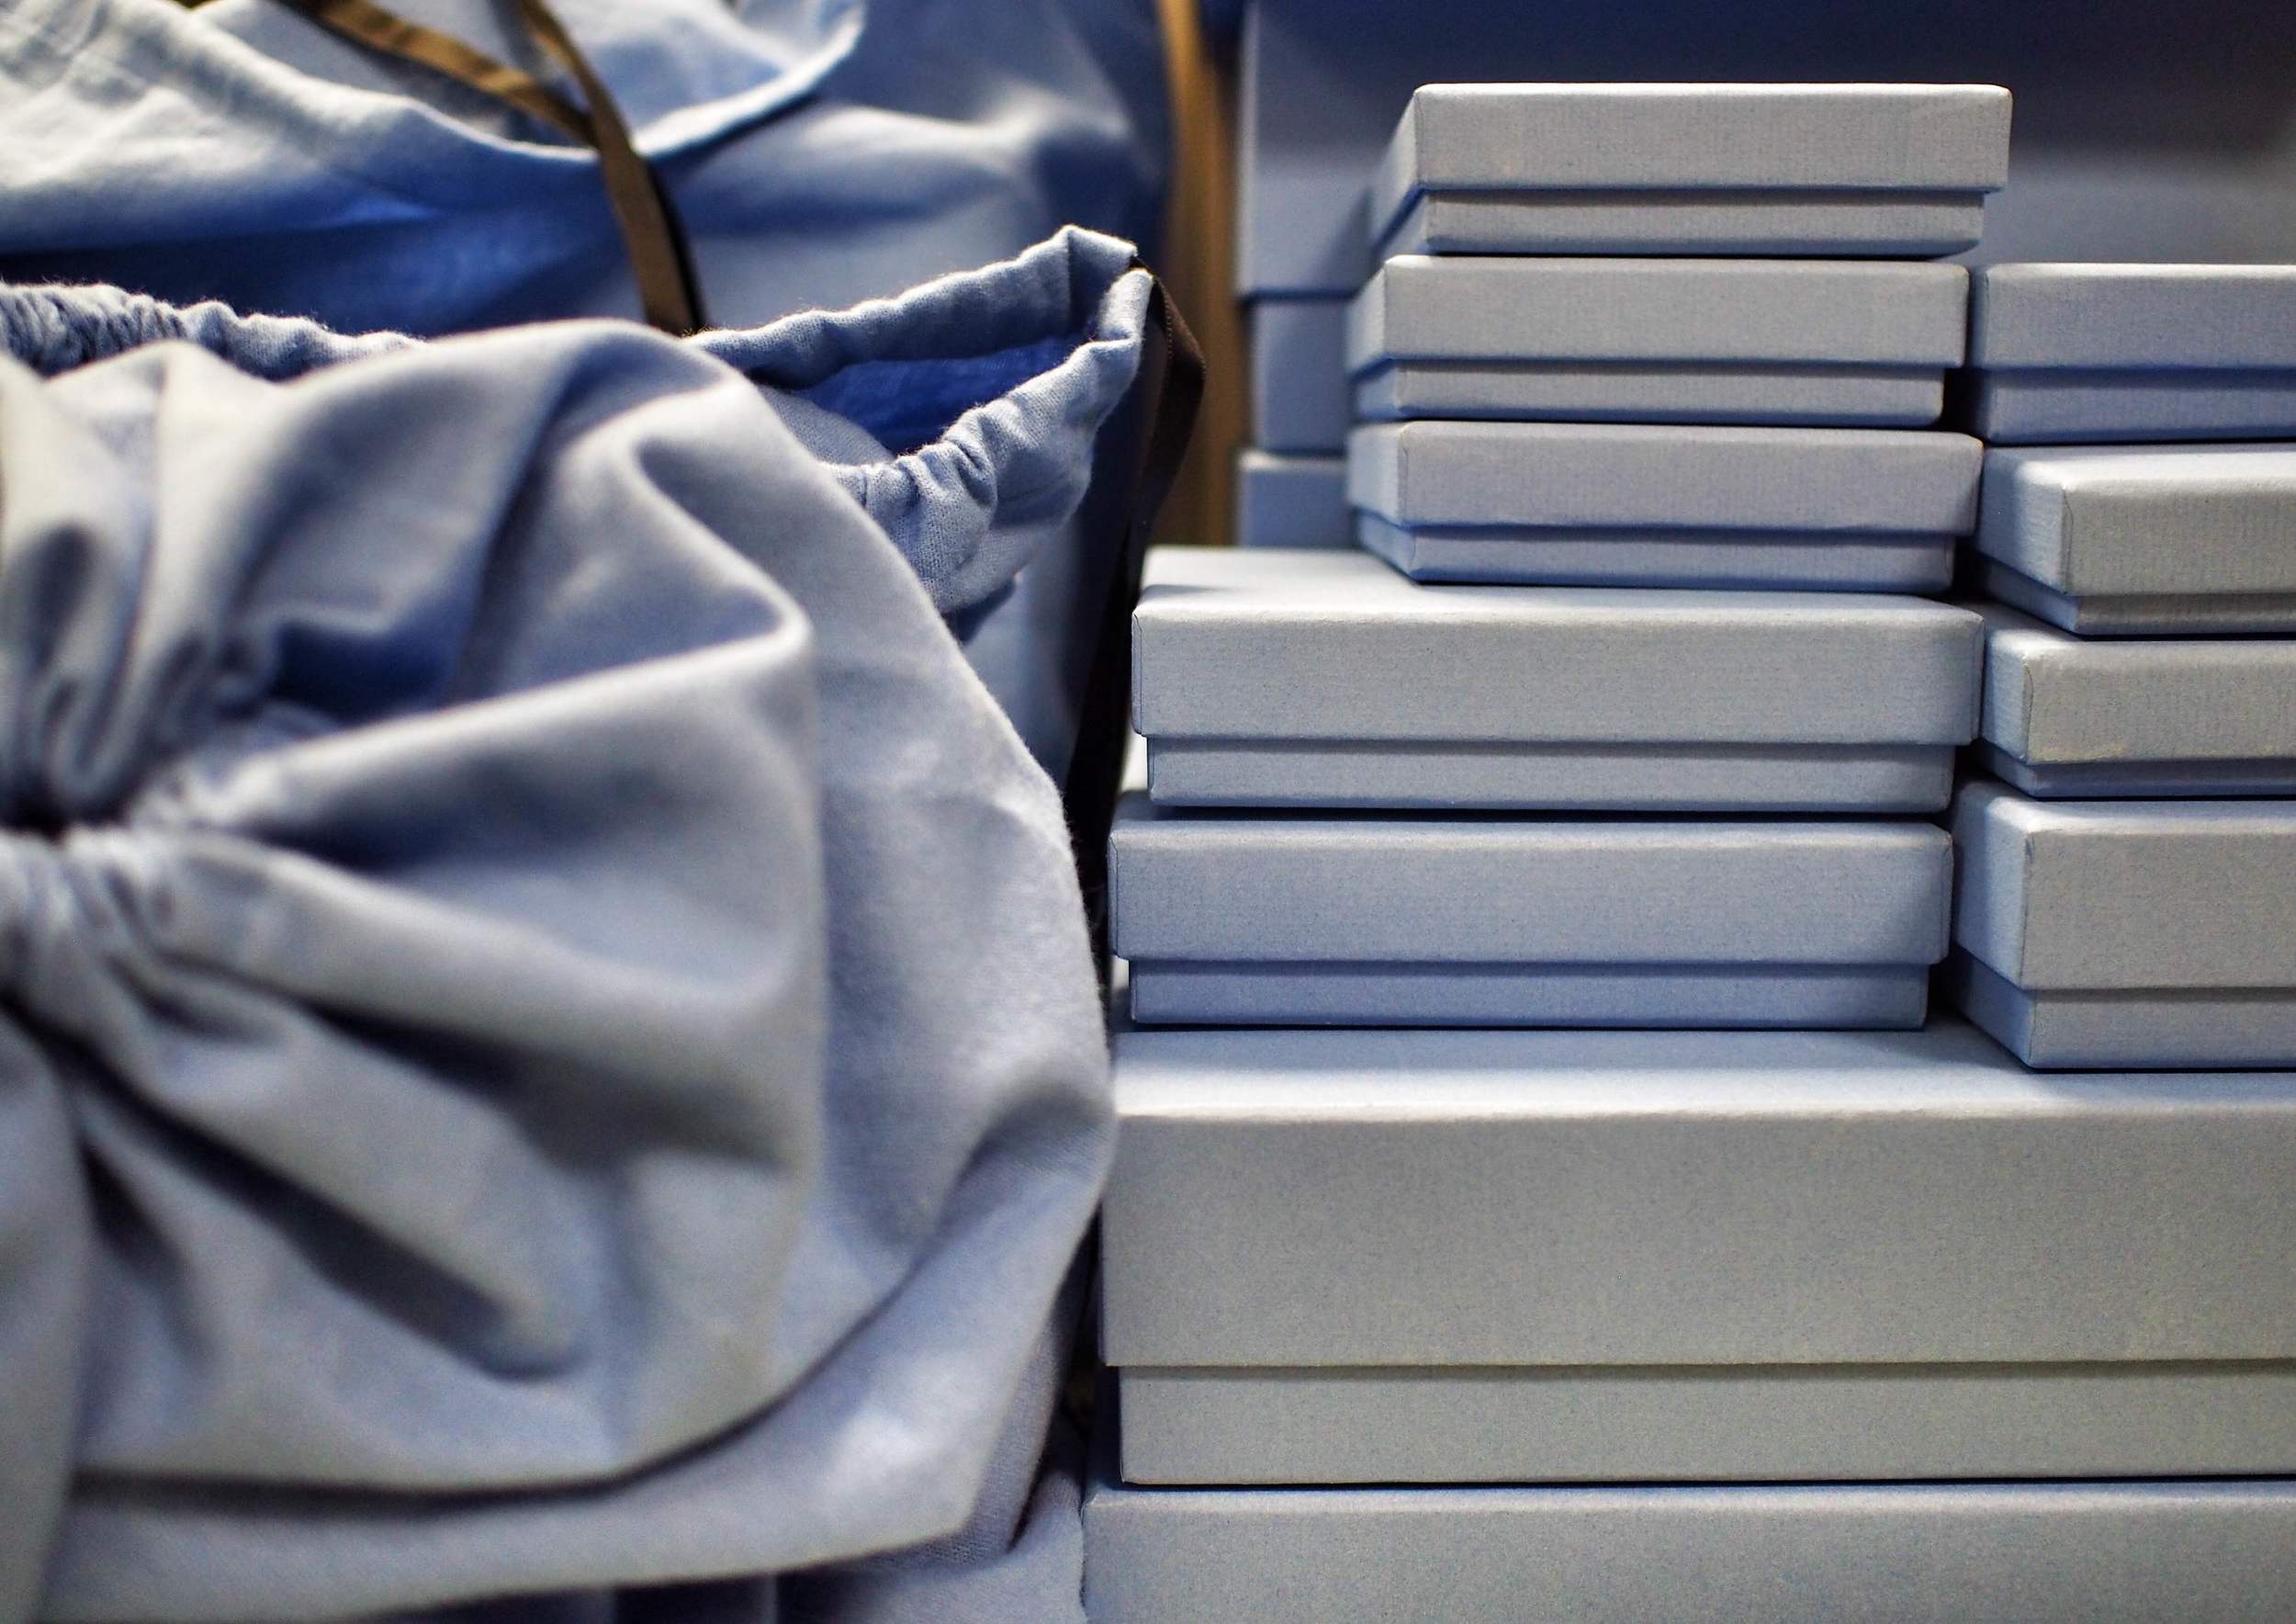 Stacks of Nile Blue boxes